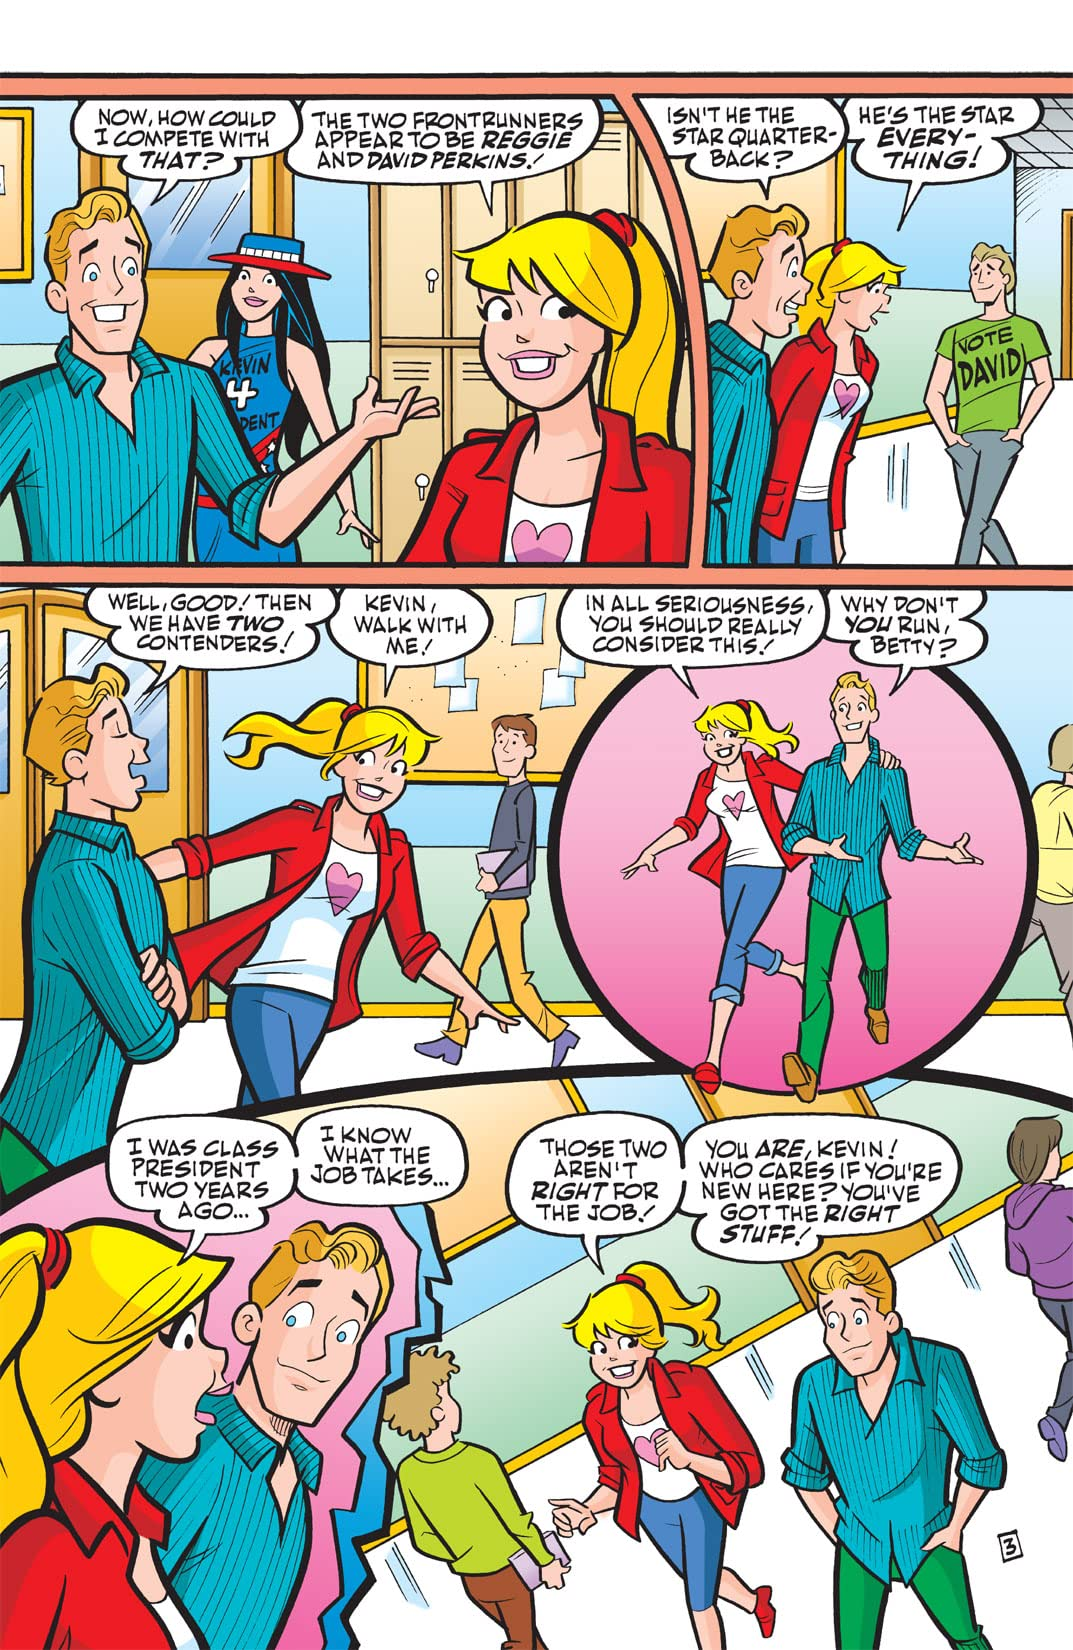 Veronica #210: (Veronica Presents Kevin Keller #4)